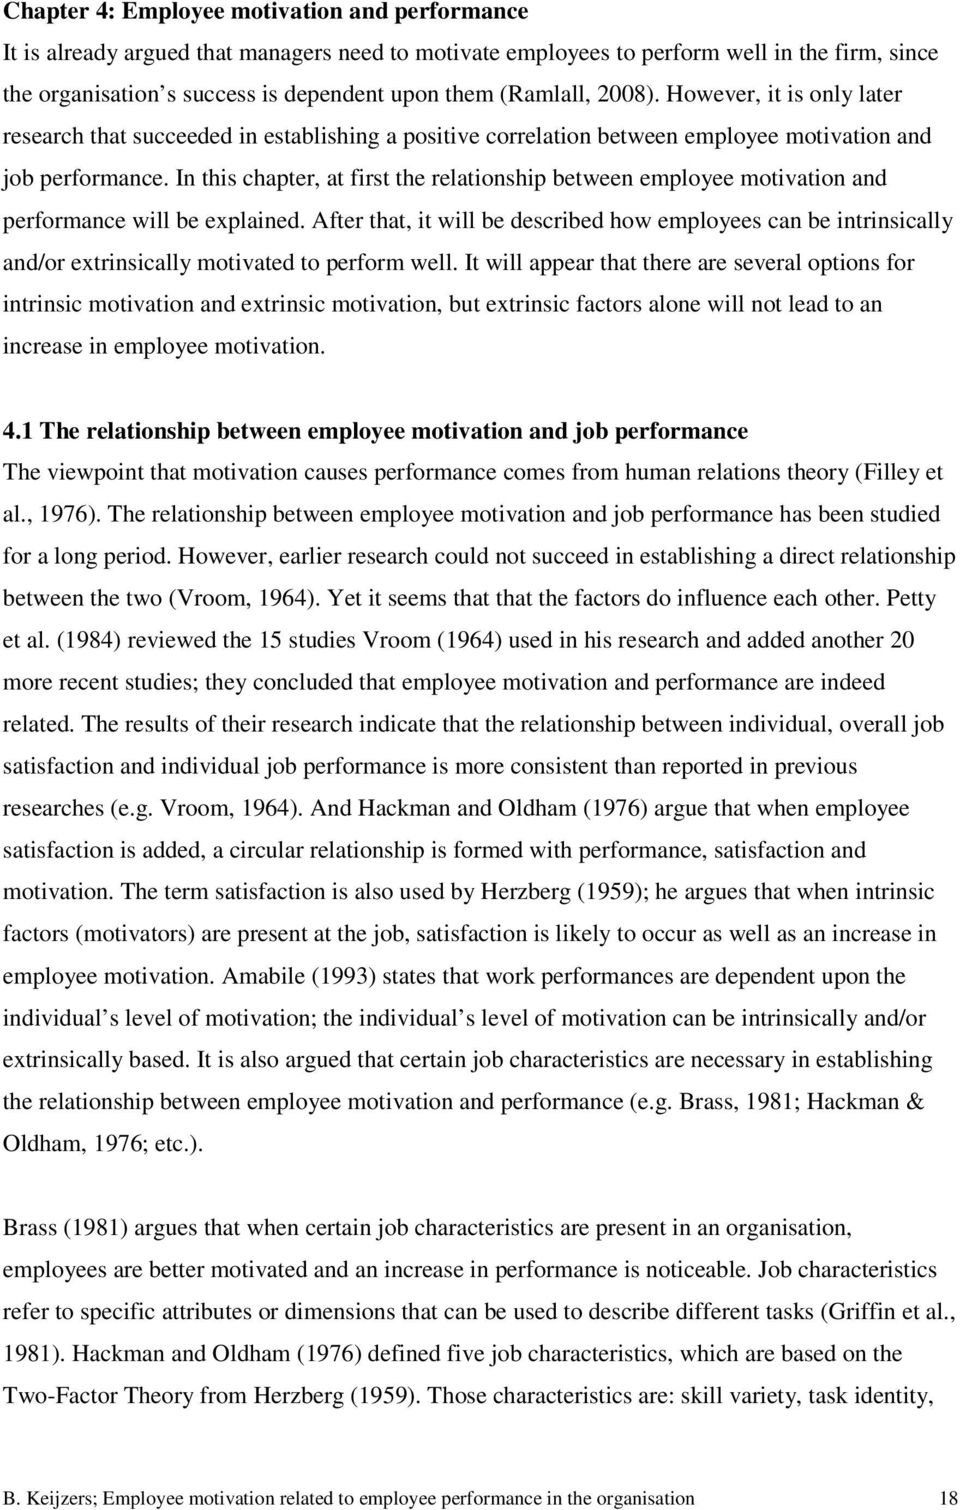 relationship between motivation and employee performance